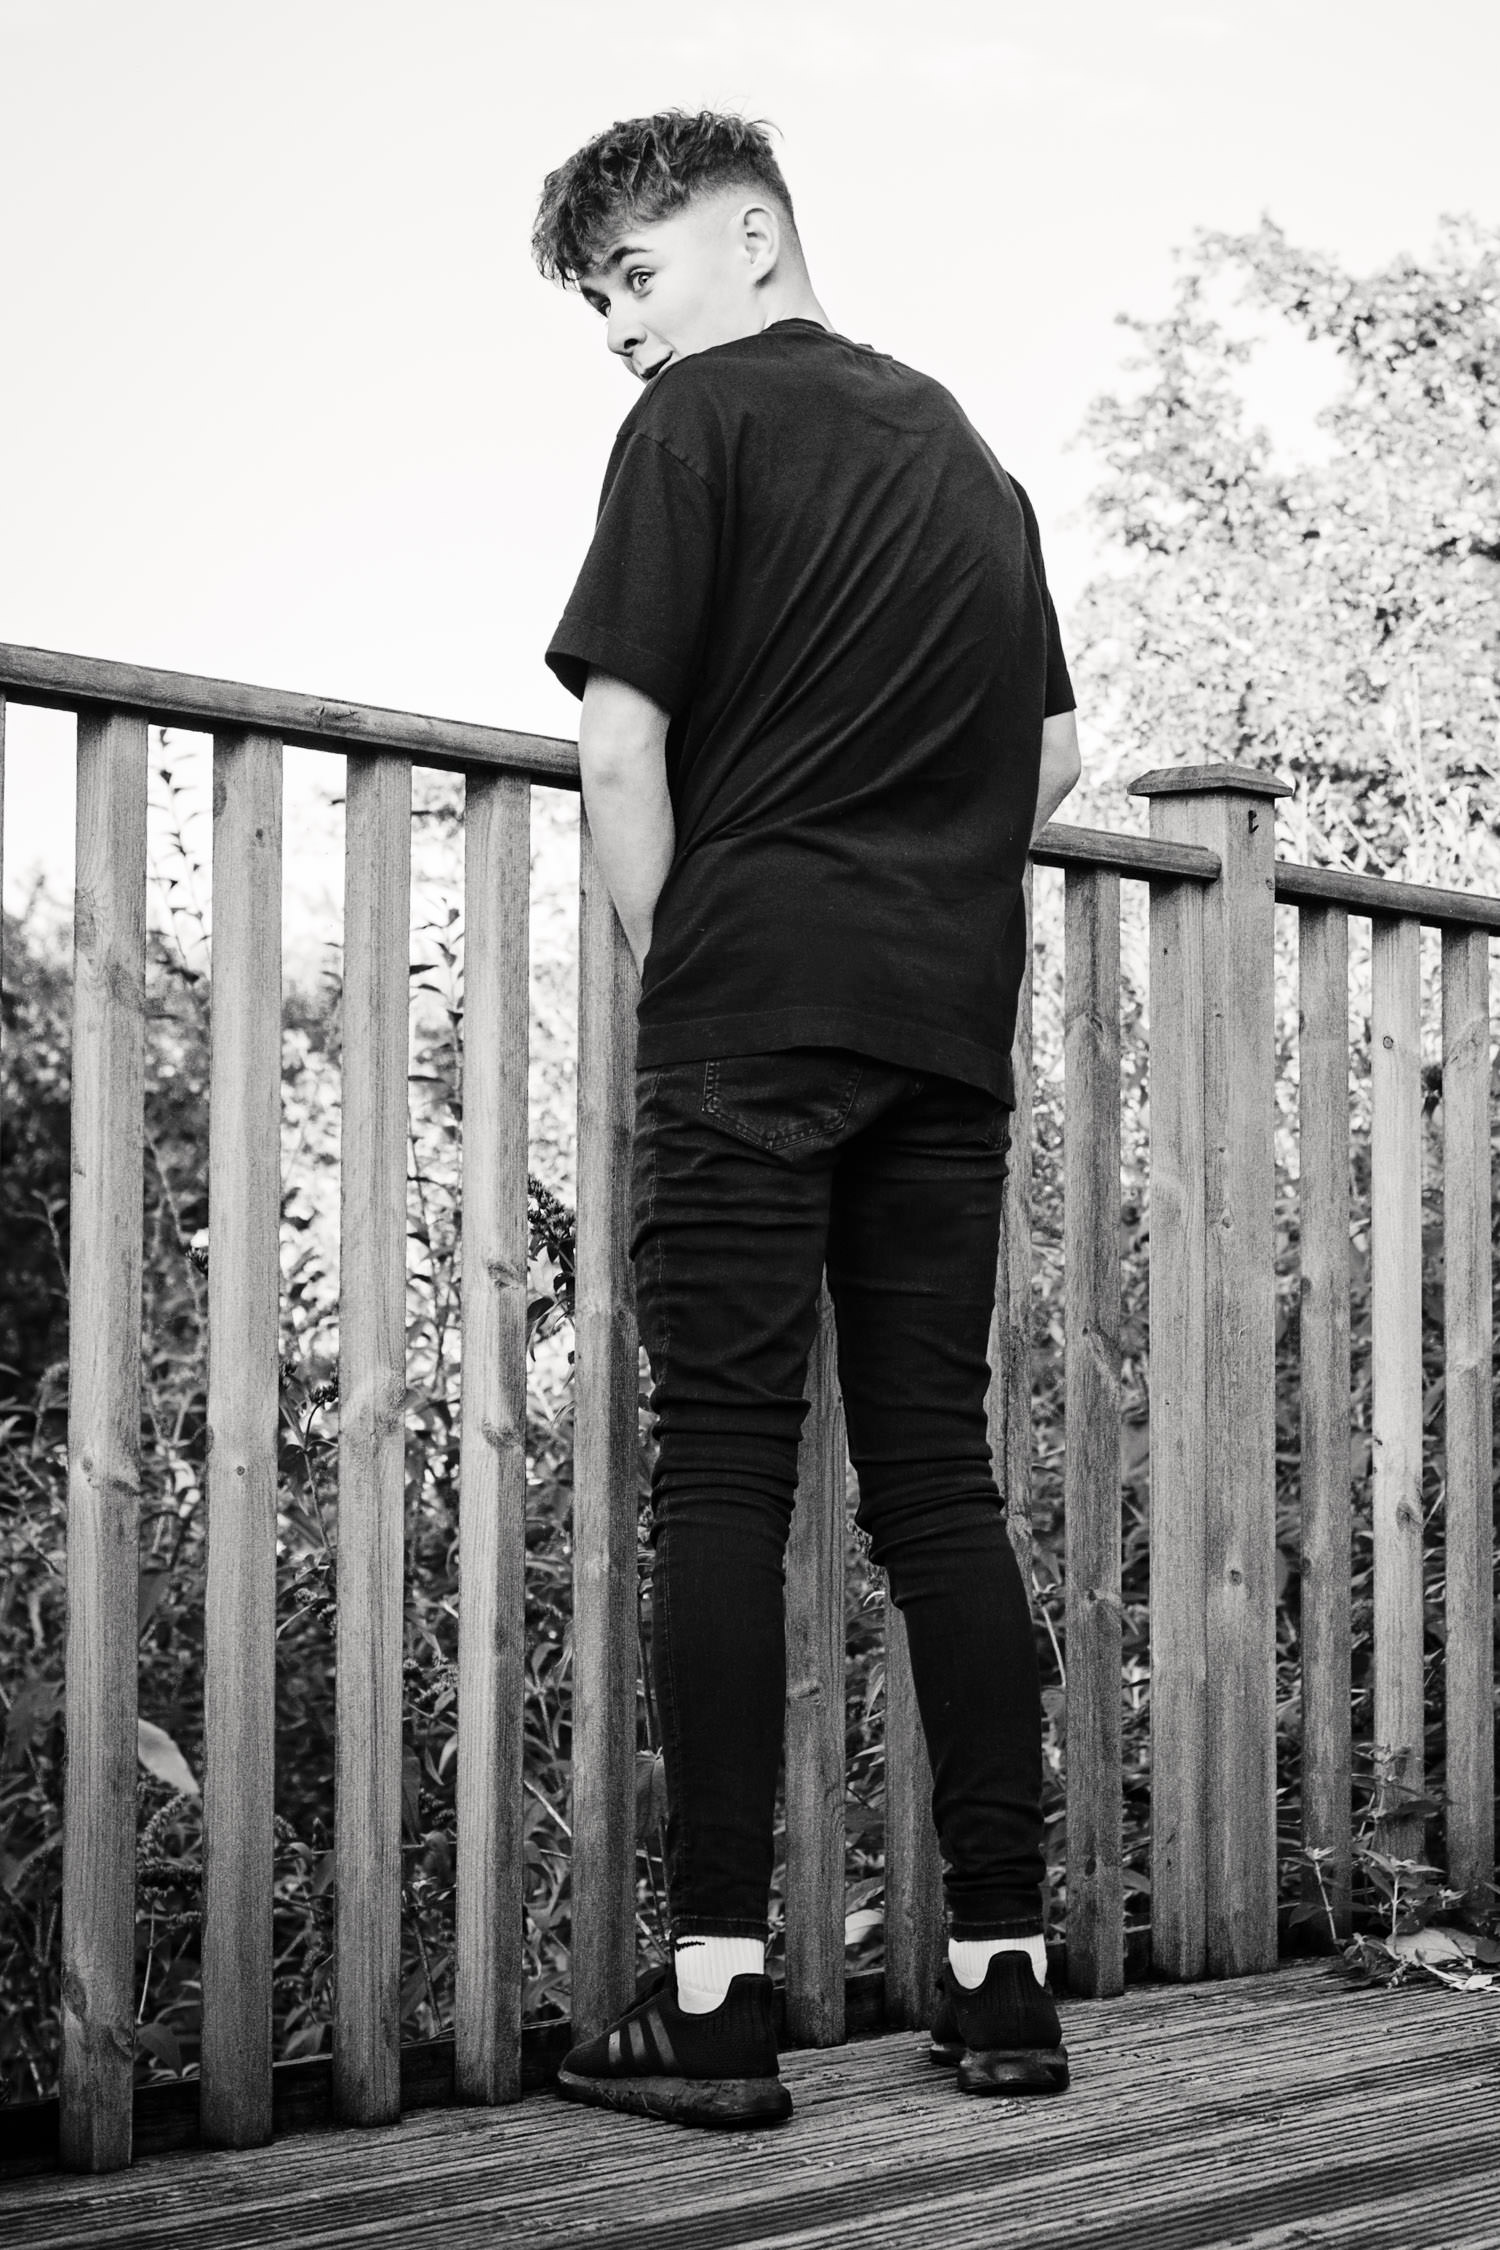 Black and white portrait of the back of a teenage boy pretending to wee through the railings.